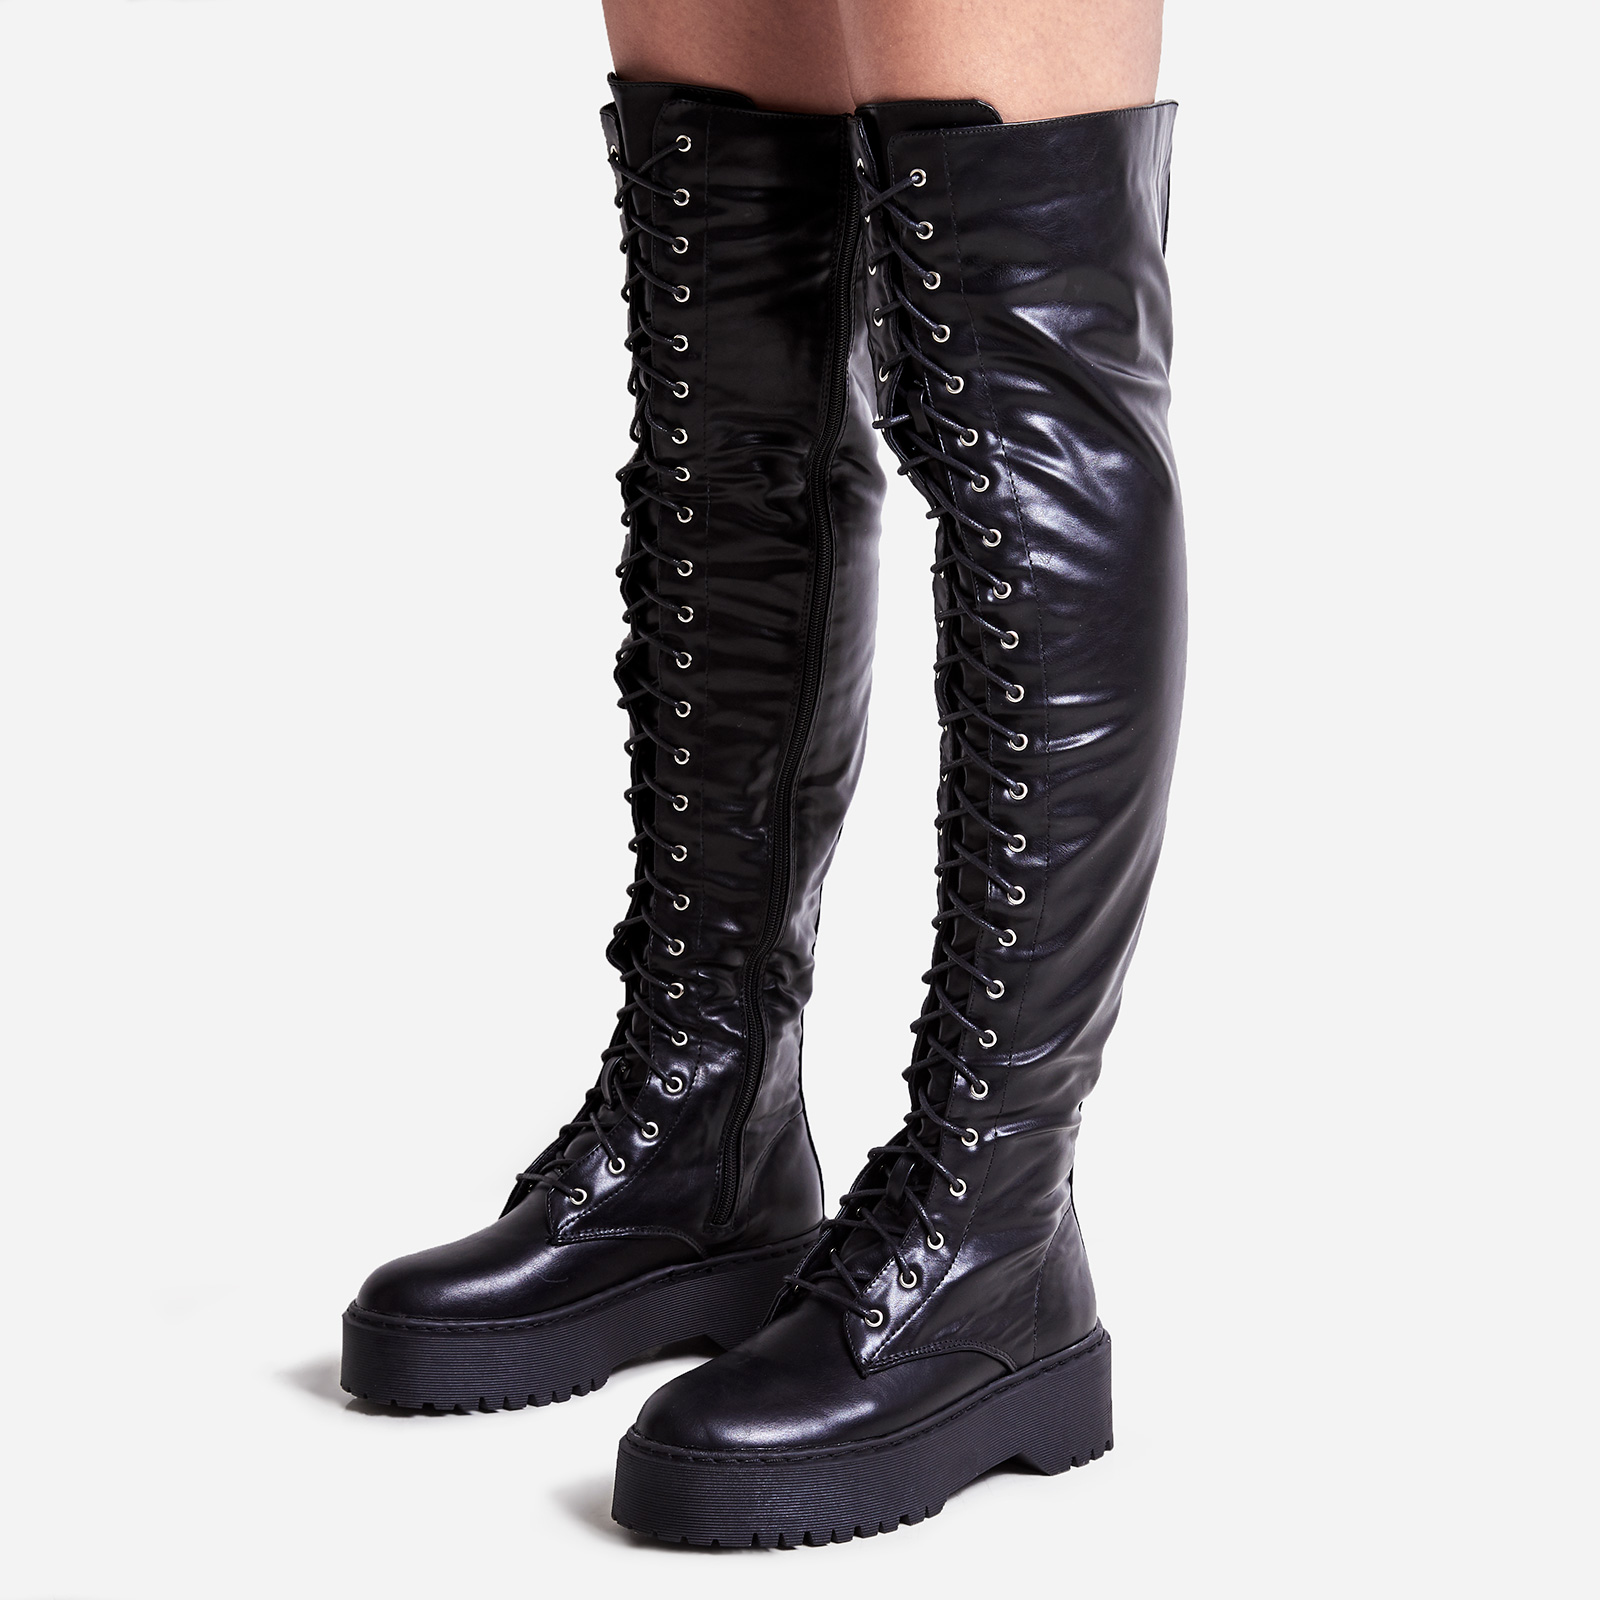 Bounce Lace Up Thigh High Long Boot In Black Faux Leather